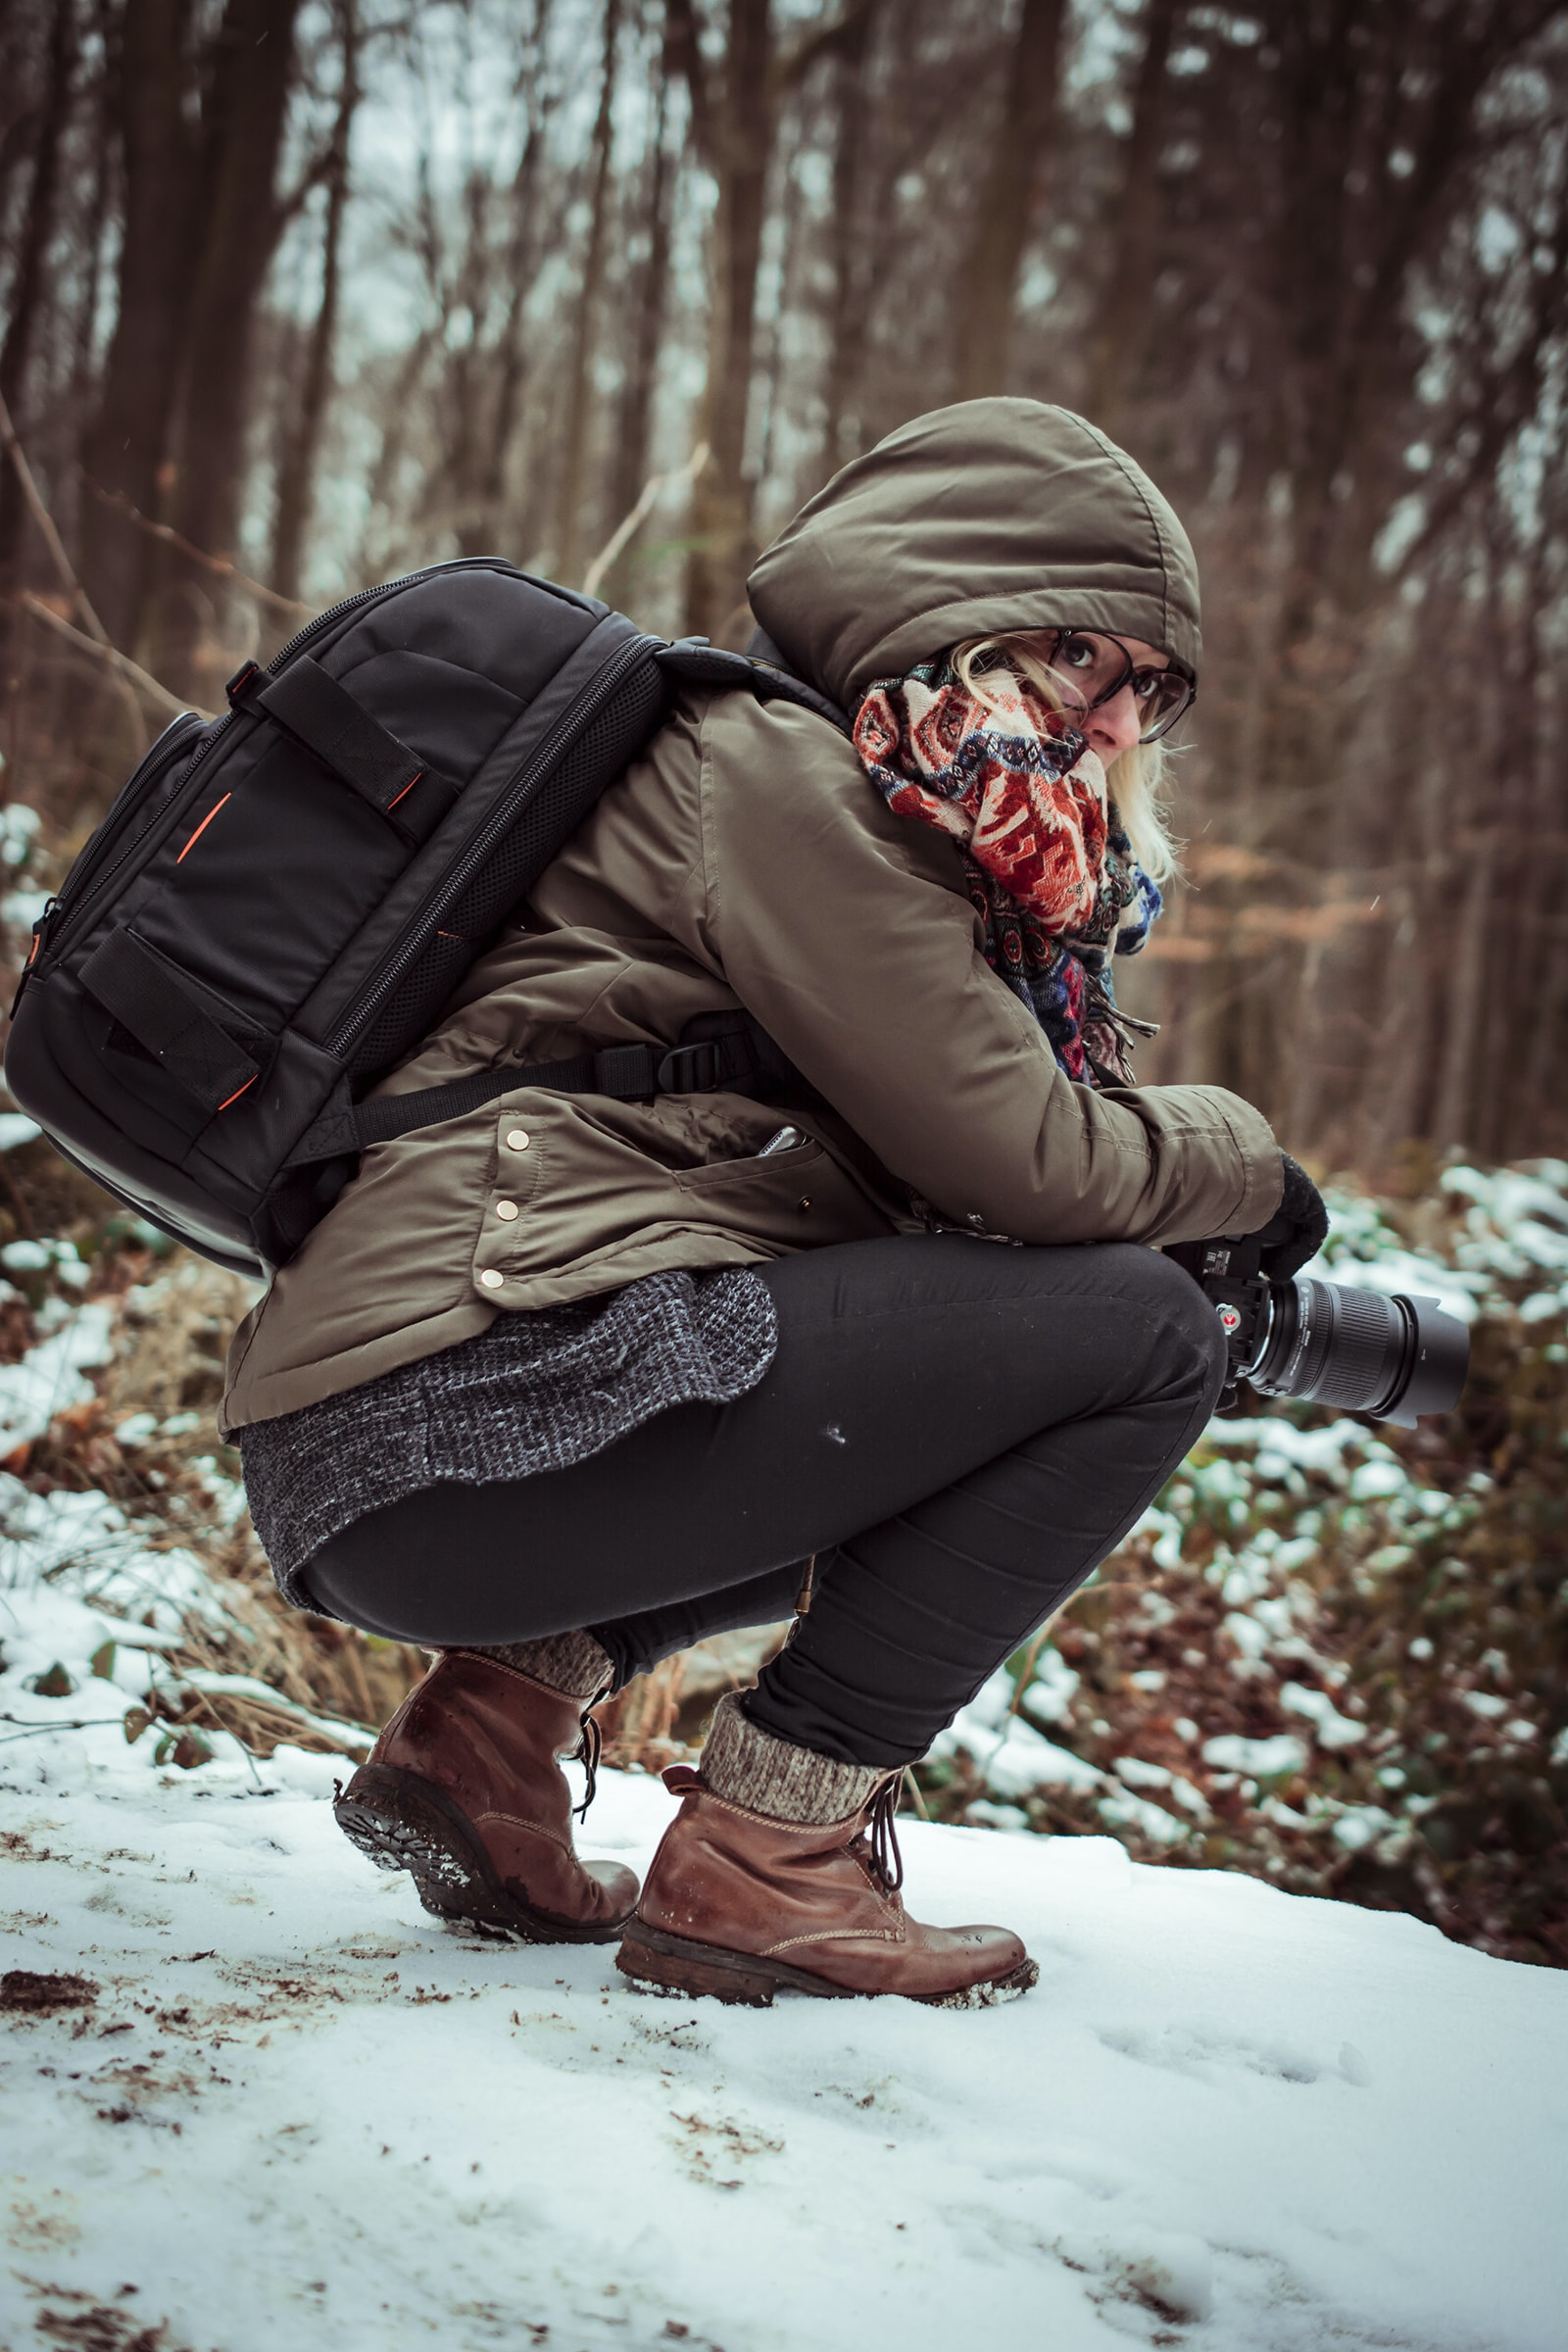 woman in brown hooded jacket holding camera while squatting on snow covered ground during daytime